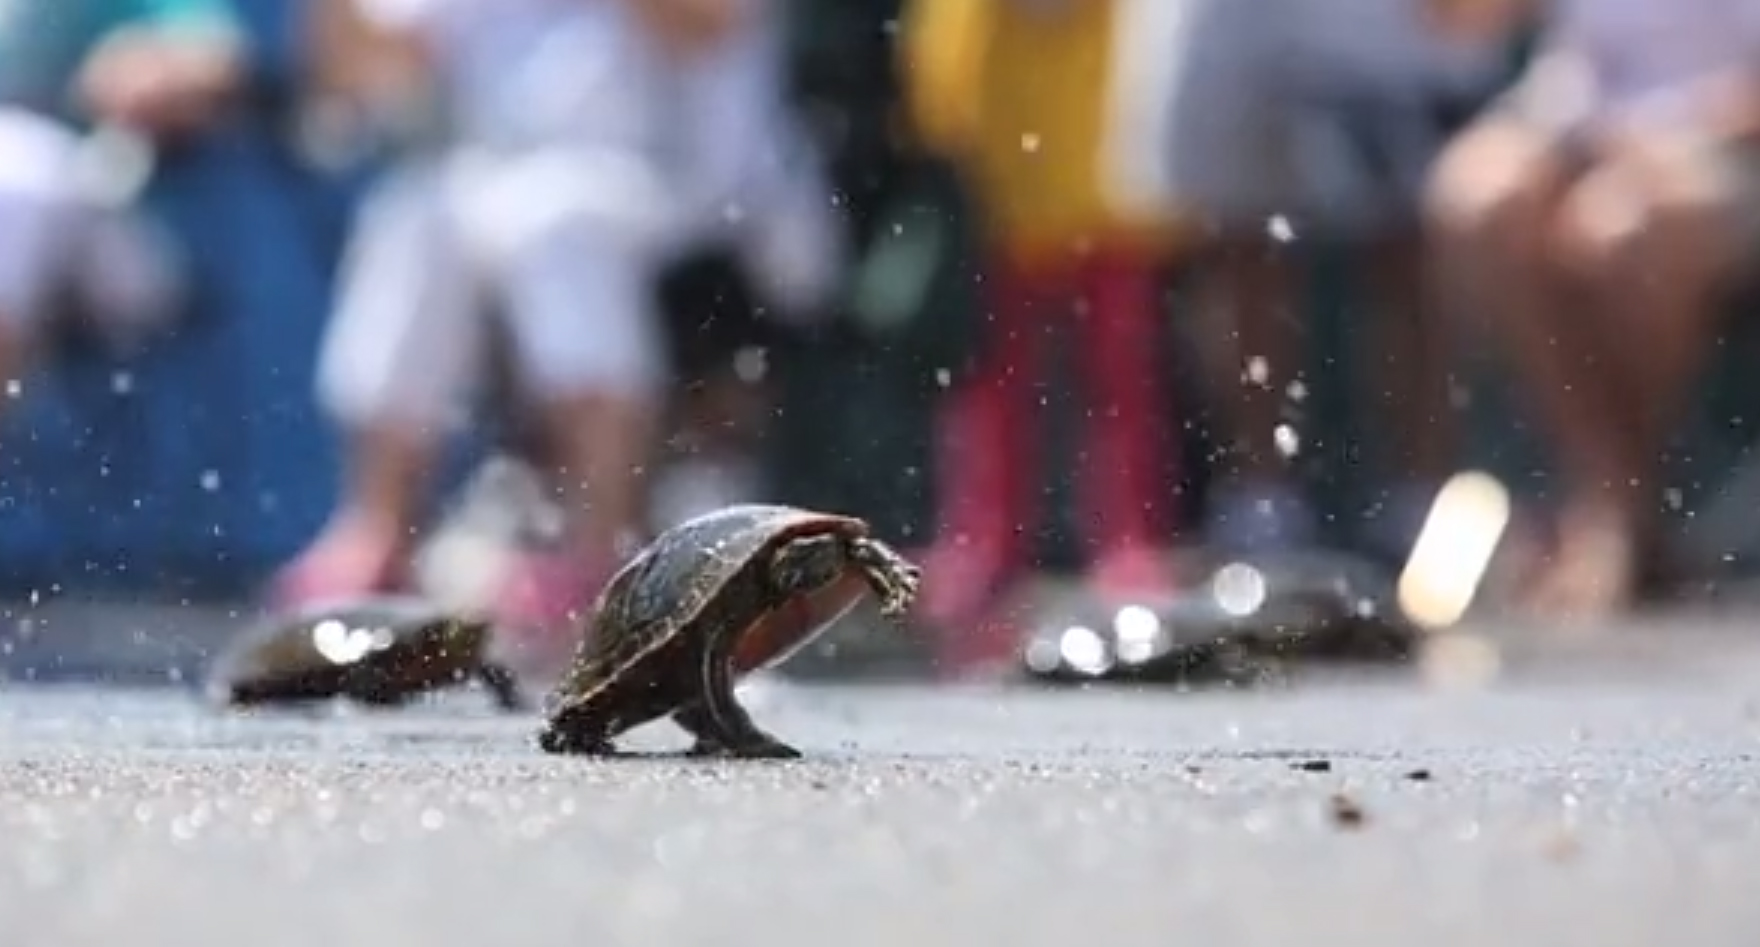 Every Wednesday during the summer, a downtown Nisswa, Minn. parking lot transforms into a race track and the streets fill with families. For 50 years, turtle racing has been a highlight for the Crow Wing County community and today third-generation racers compete for the title of grand champion.